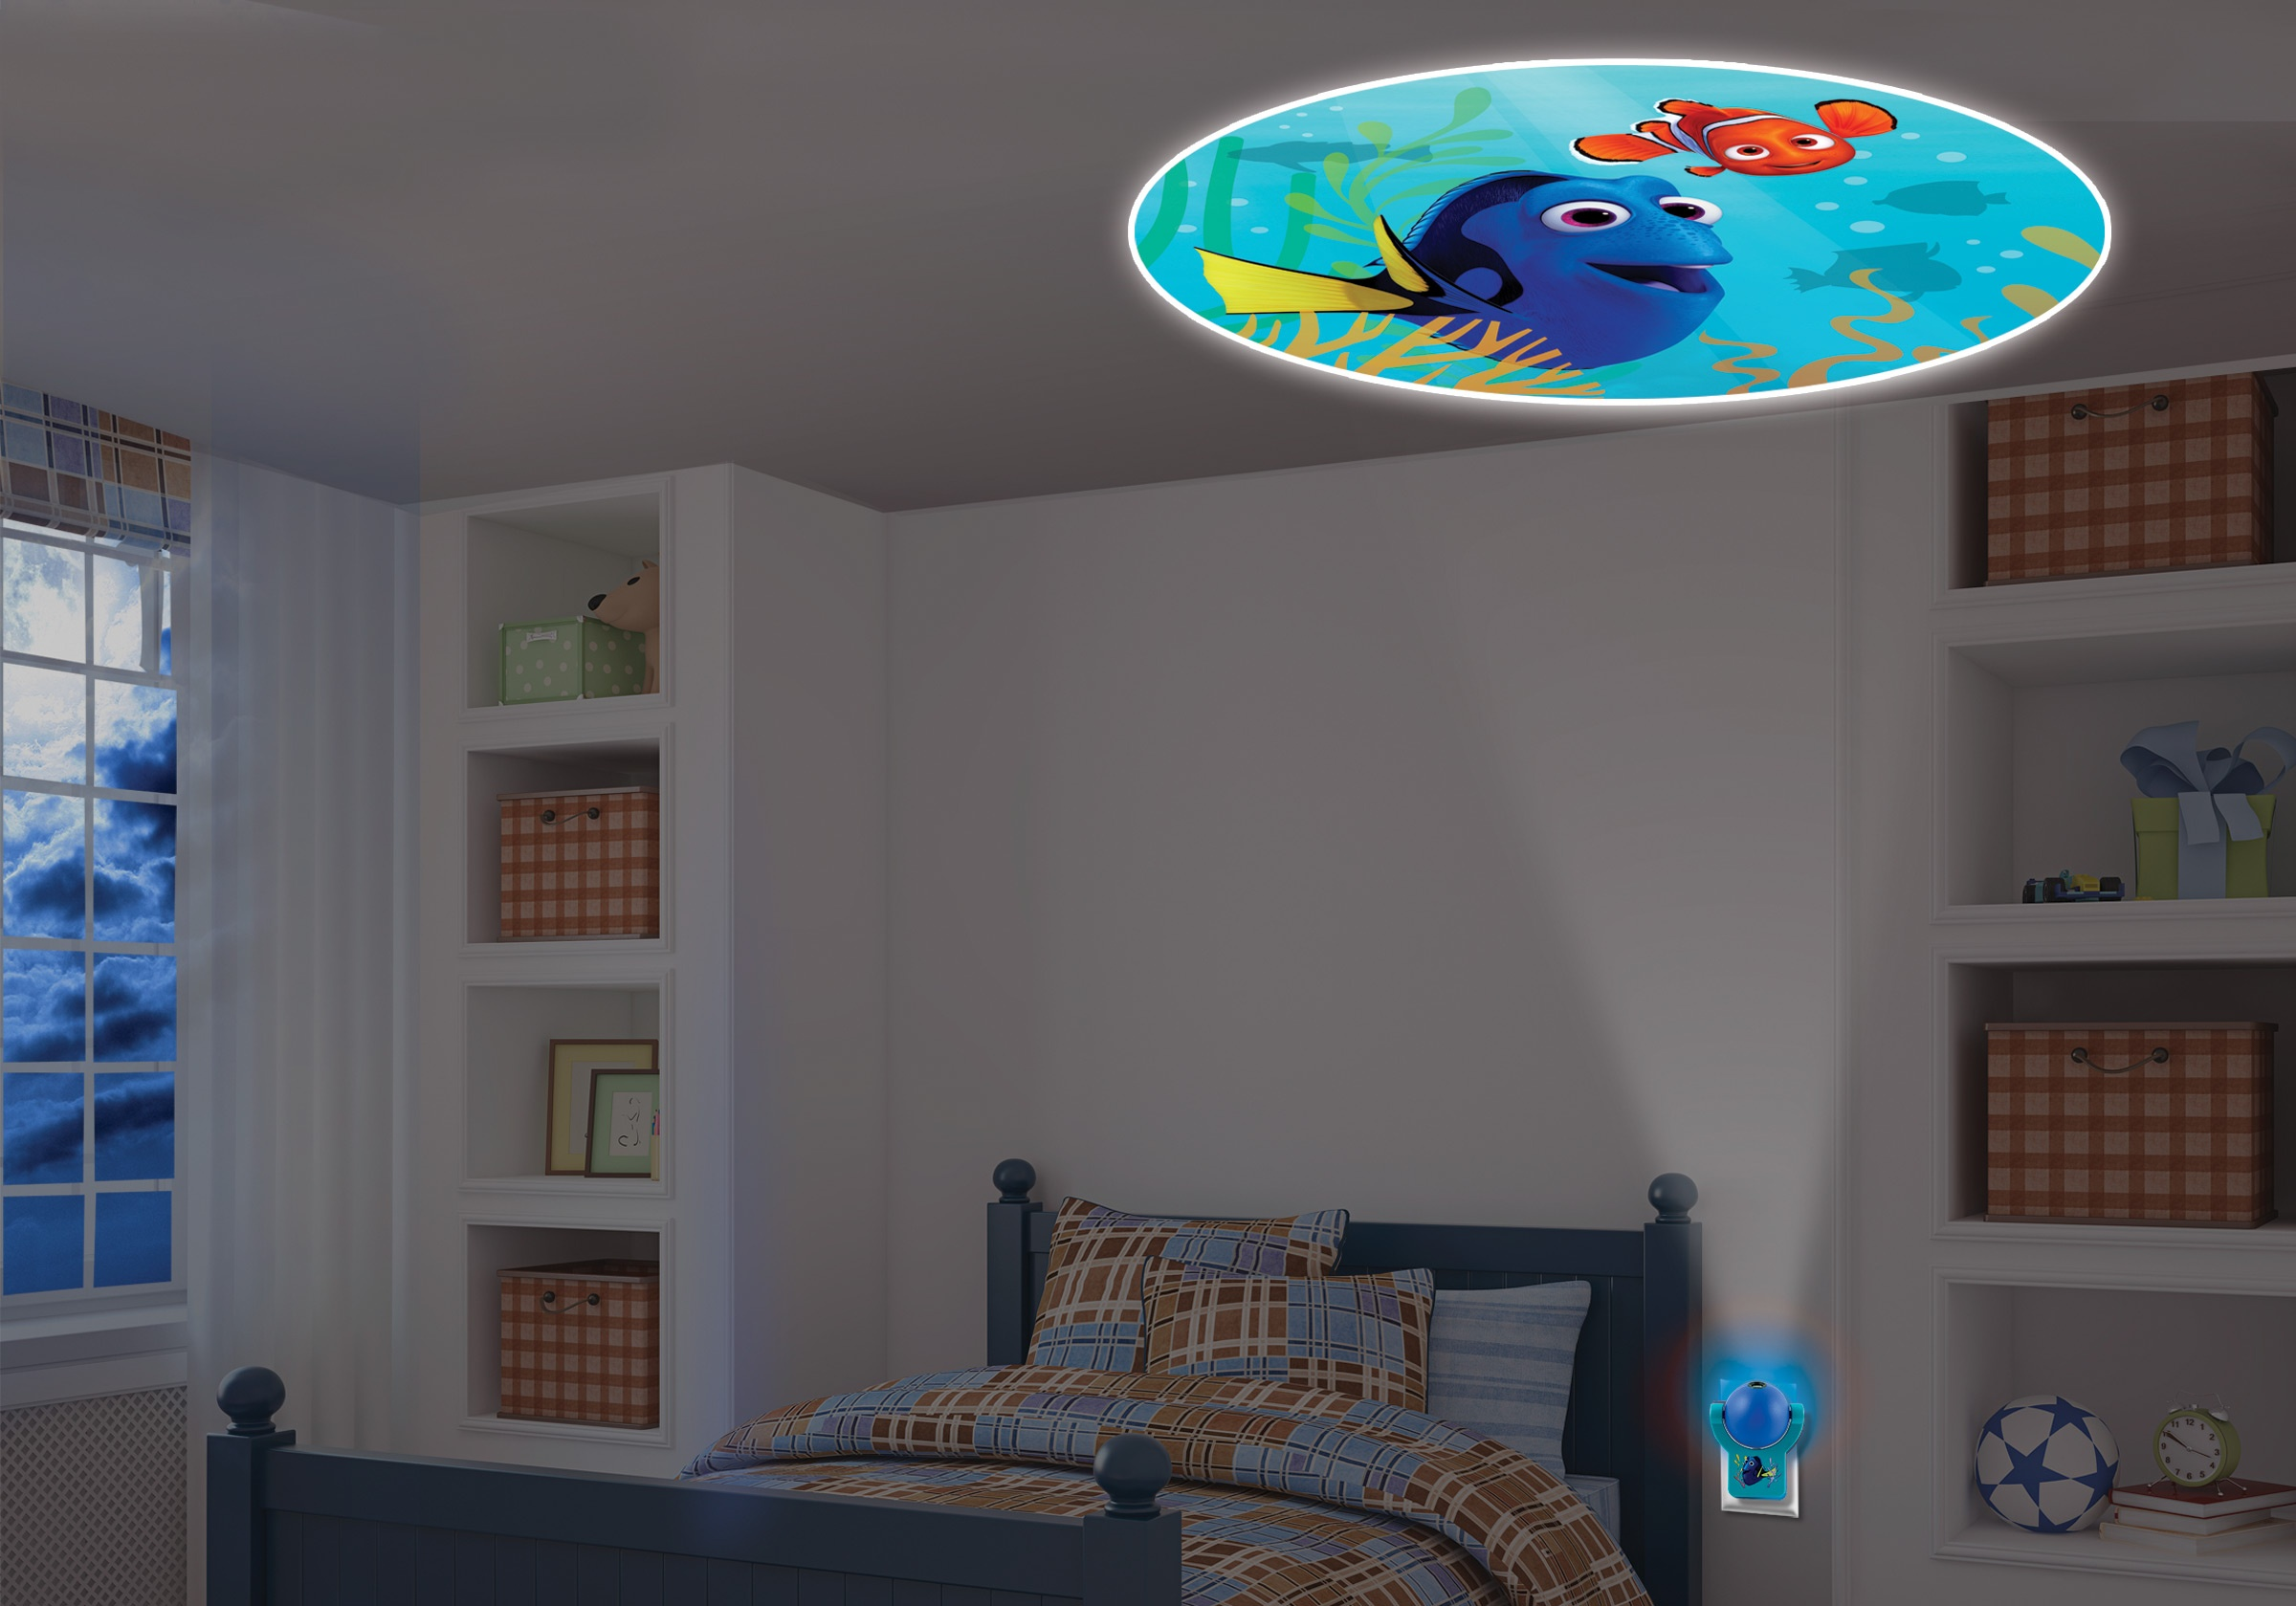 Projectables Help Kids Fall Asleep Easier with Finding Dory Swimming by Their Side At Bedtime.